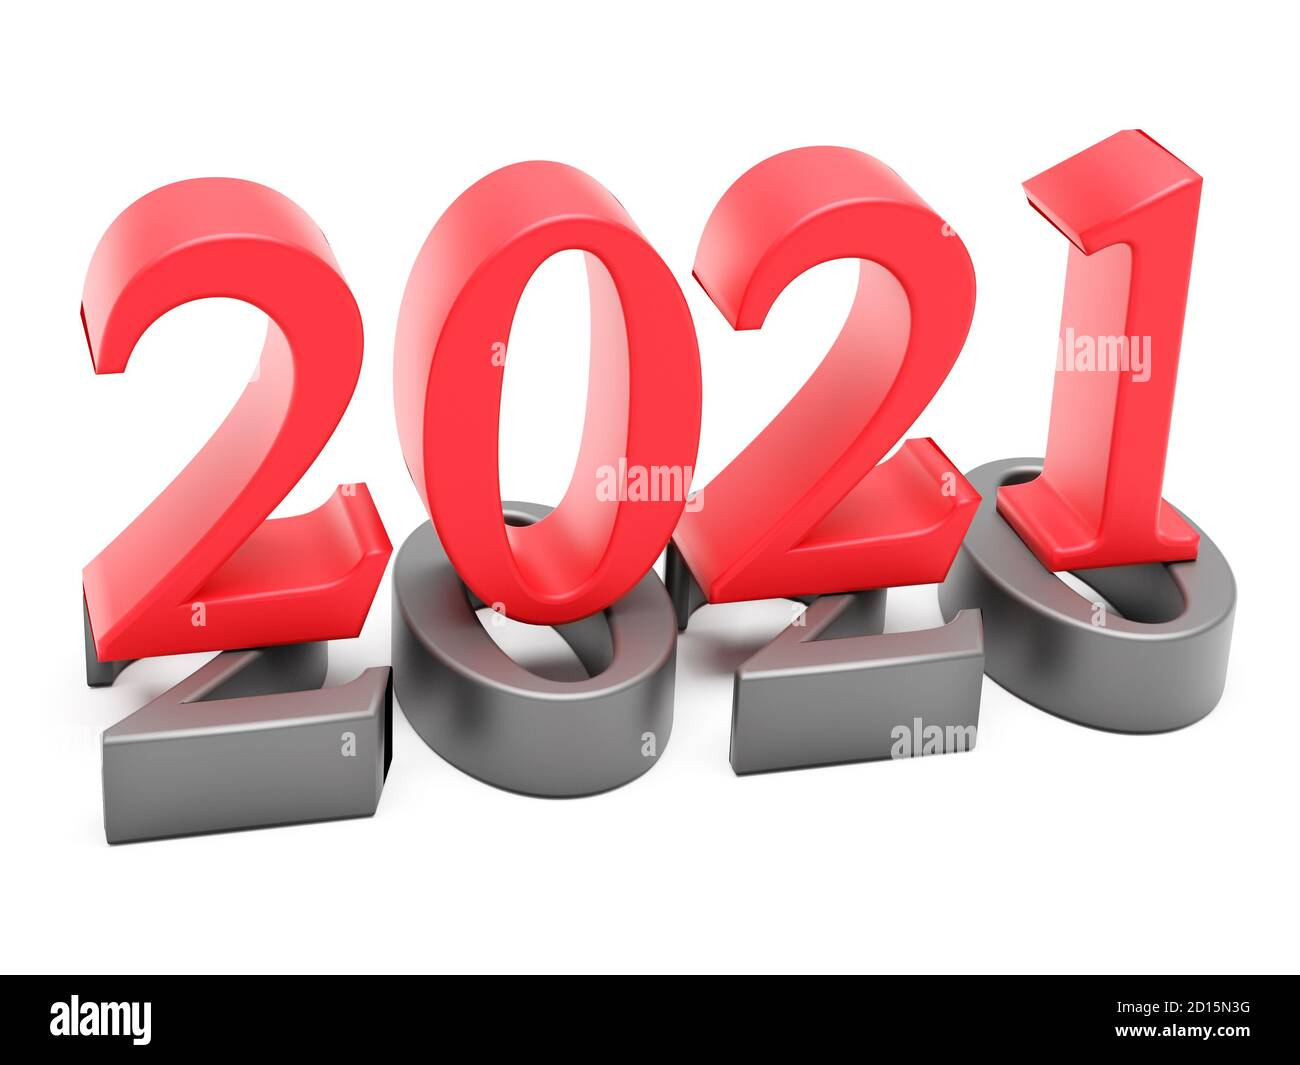 new year 2021 holiday concept the color number 2021 lies at 2020 3d rendering stock photo alamy alamy